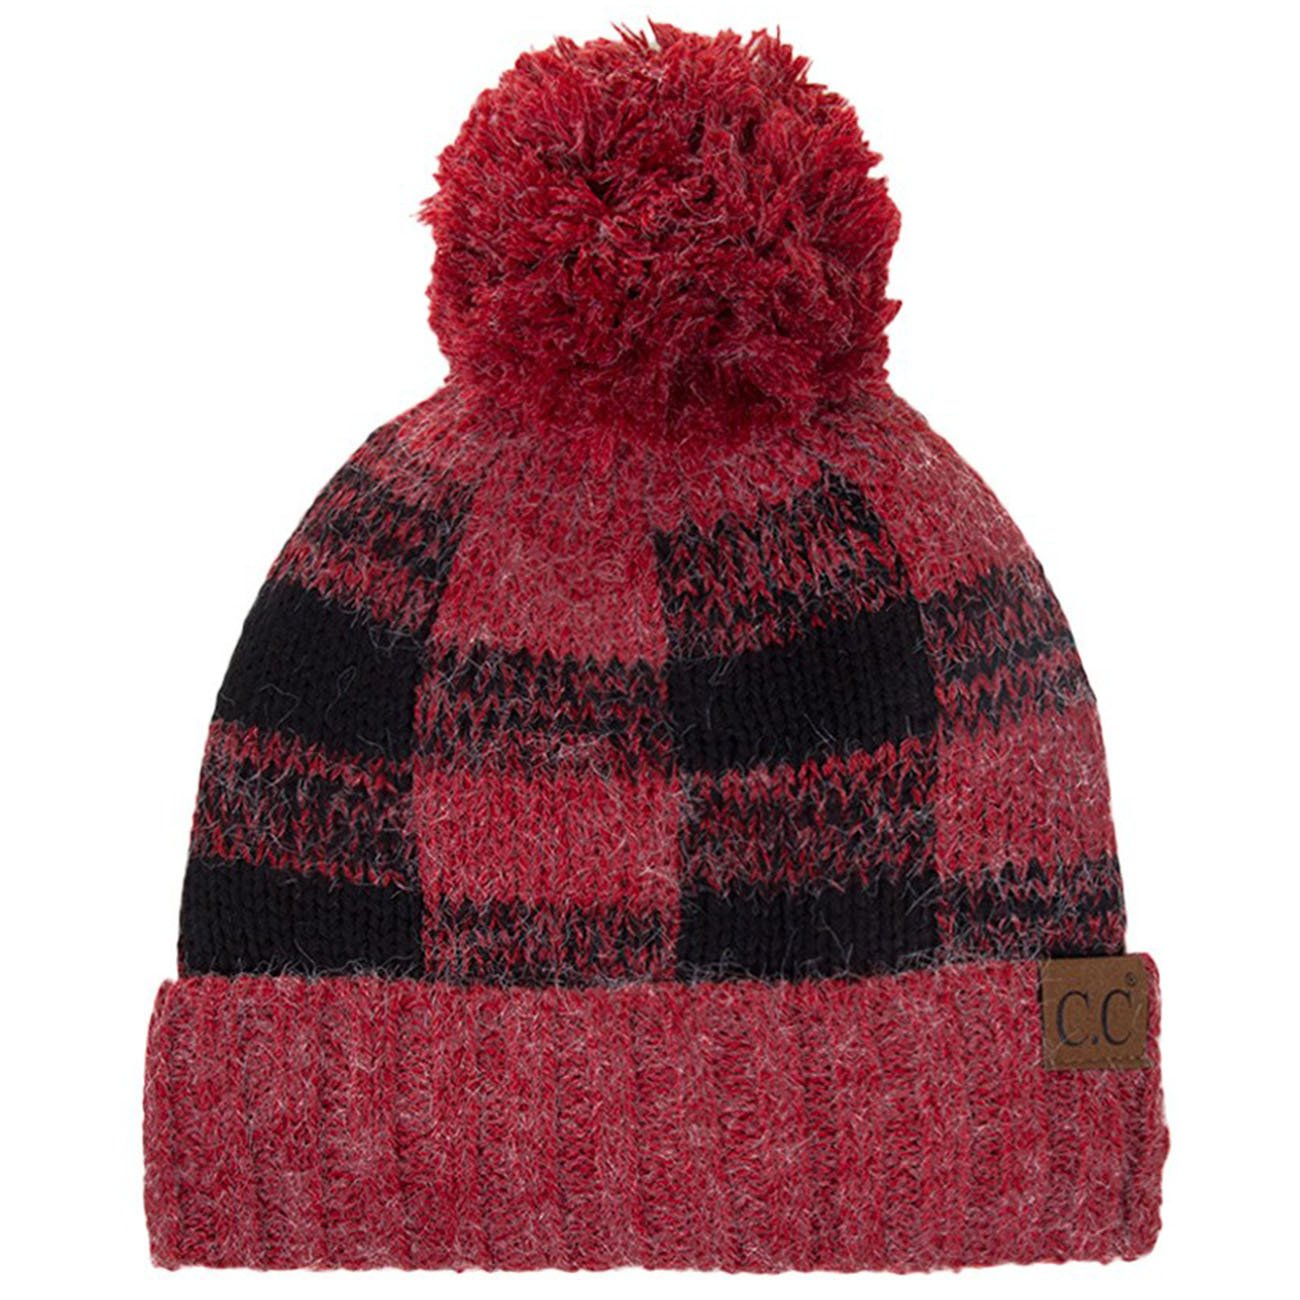 ScarvesMe CC Buffalo Check Pattern Knitted Beanie Hat with Pom Pom (Red/Black)